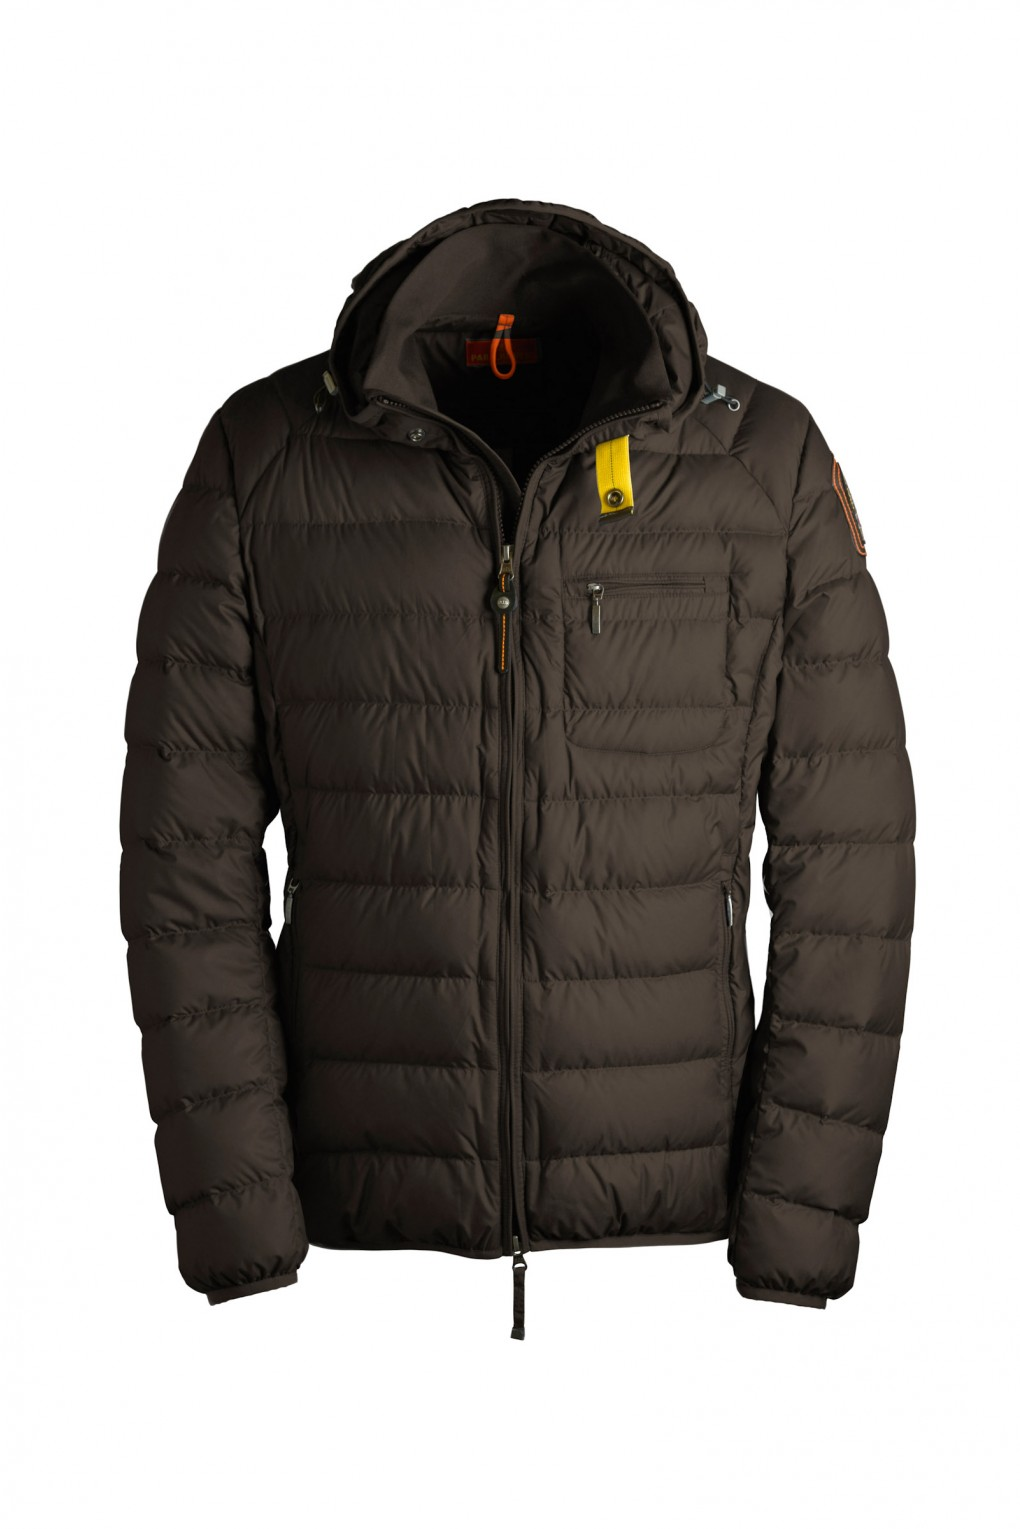 parajumpers LAST MINUTE man outerwear Chestnut